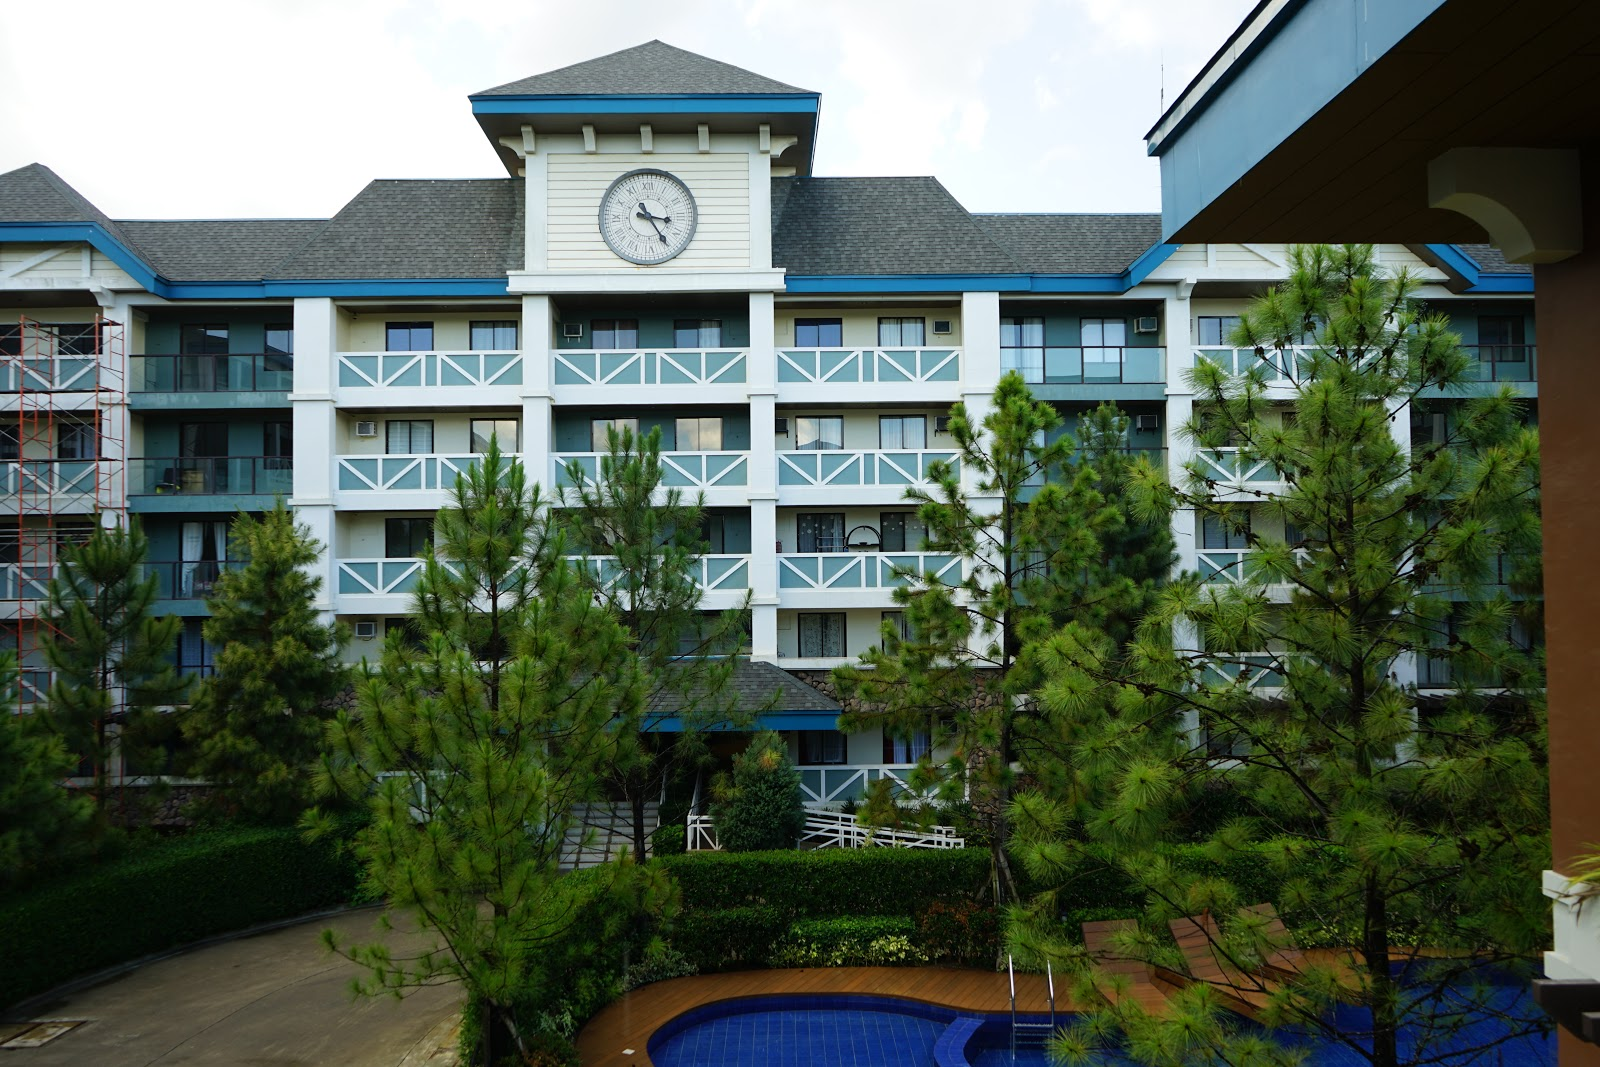 Pine Suites condo development in Tagaytay surrounded by pine trees and vibrant greenery with Danish blue modern condo architecture